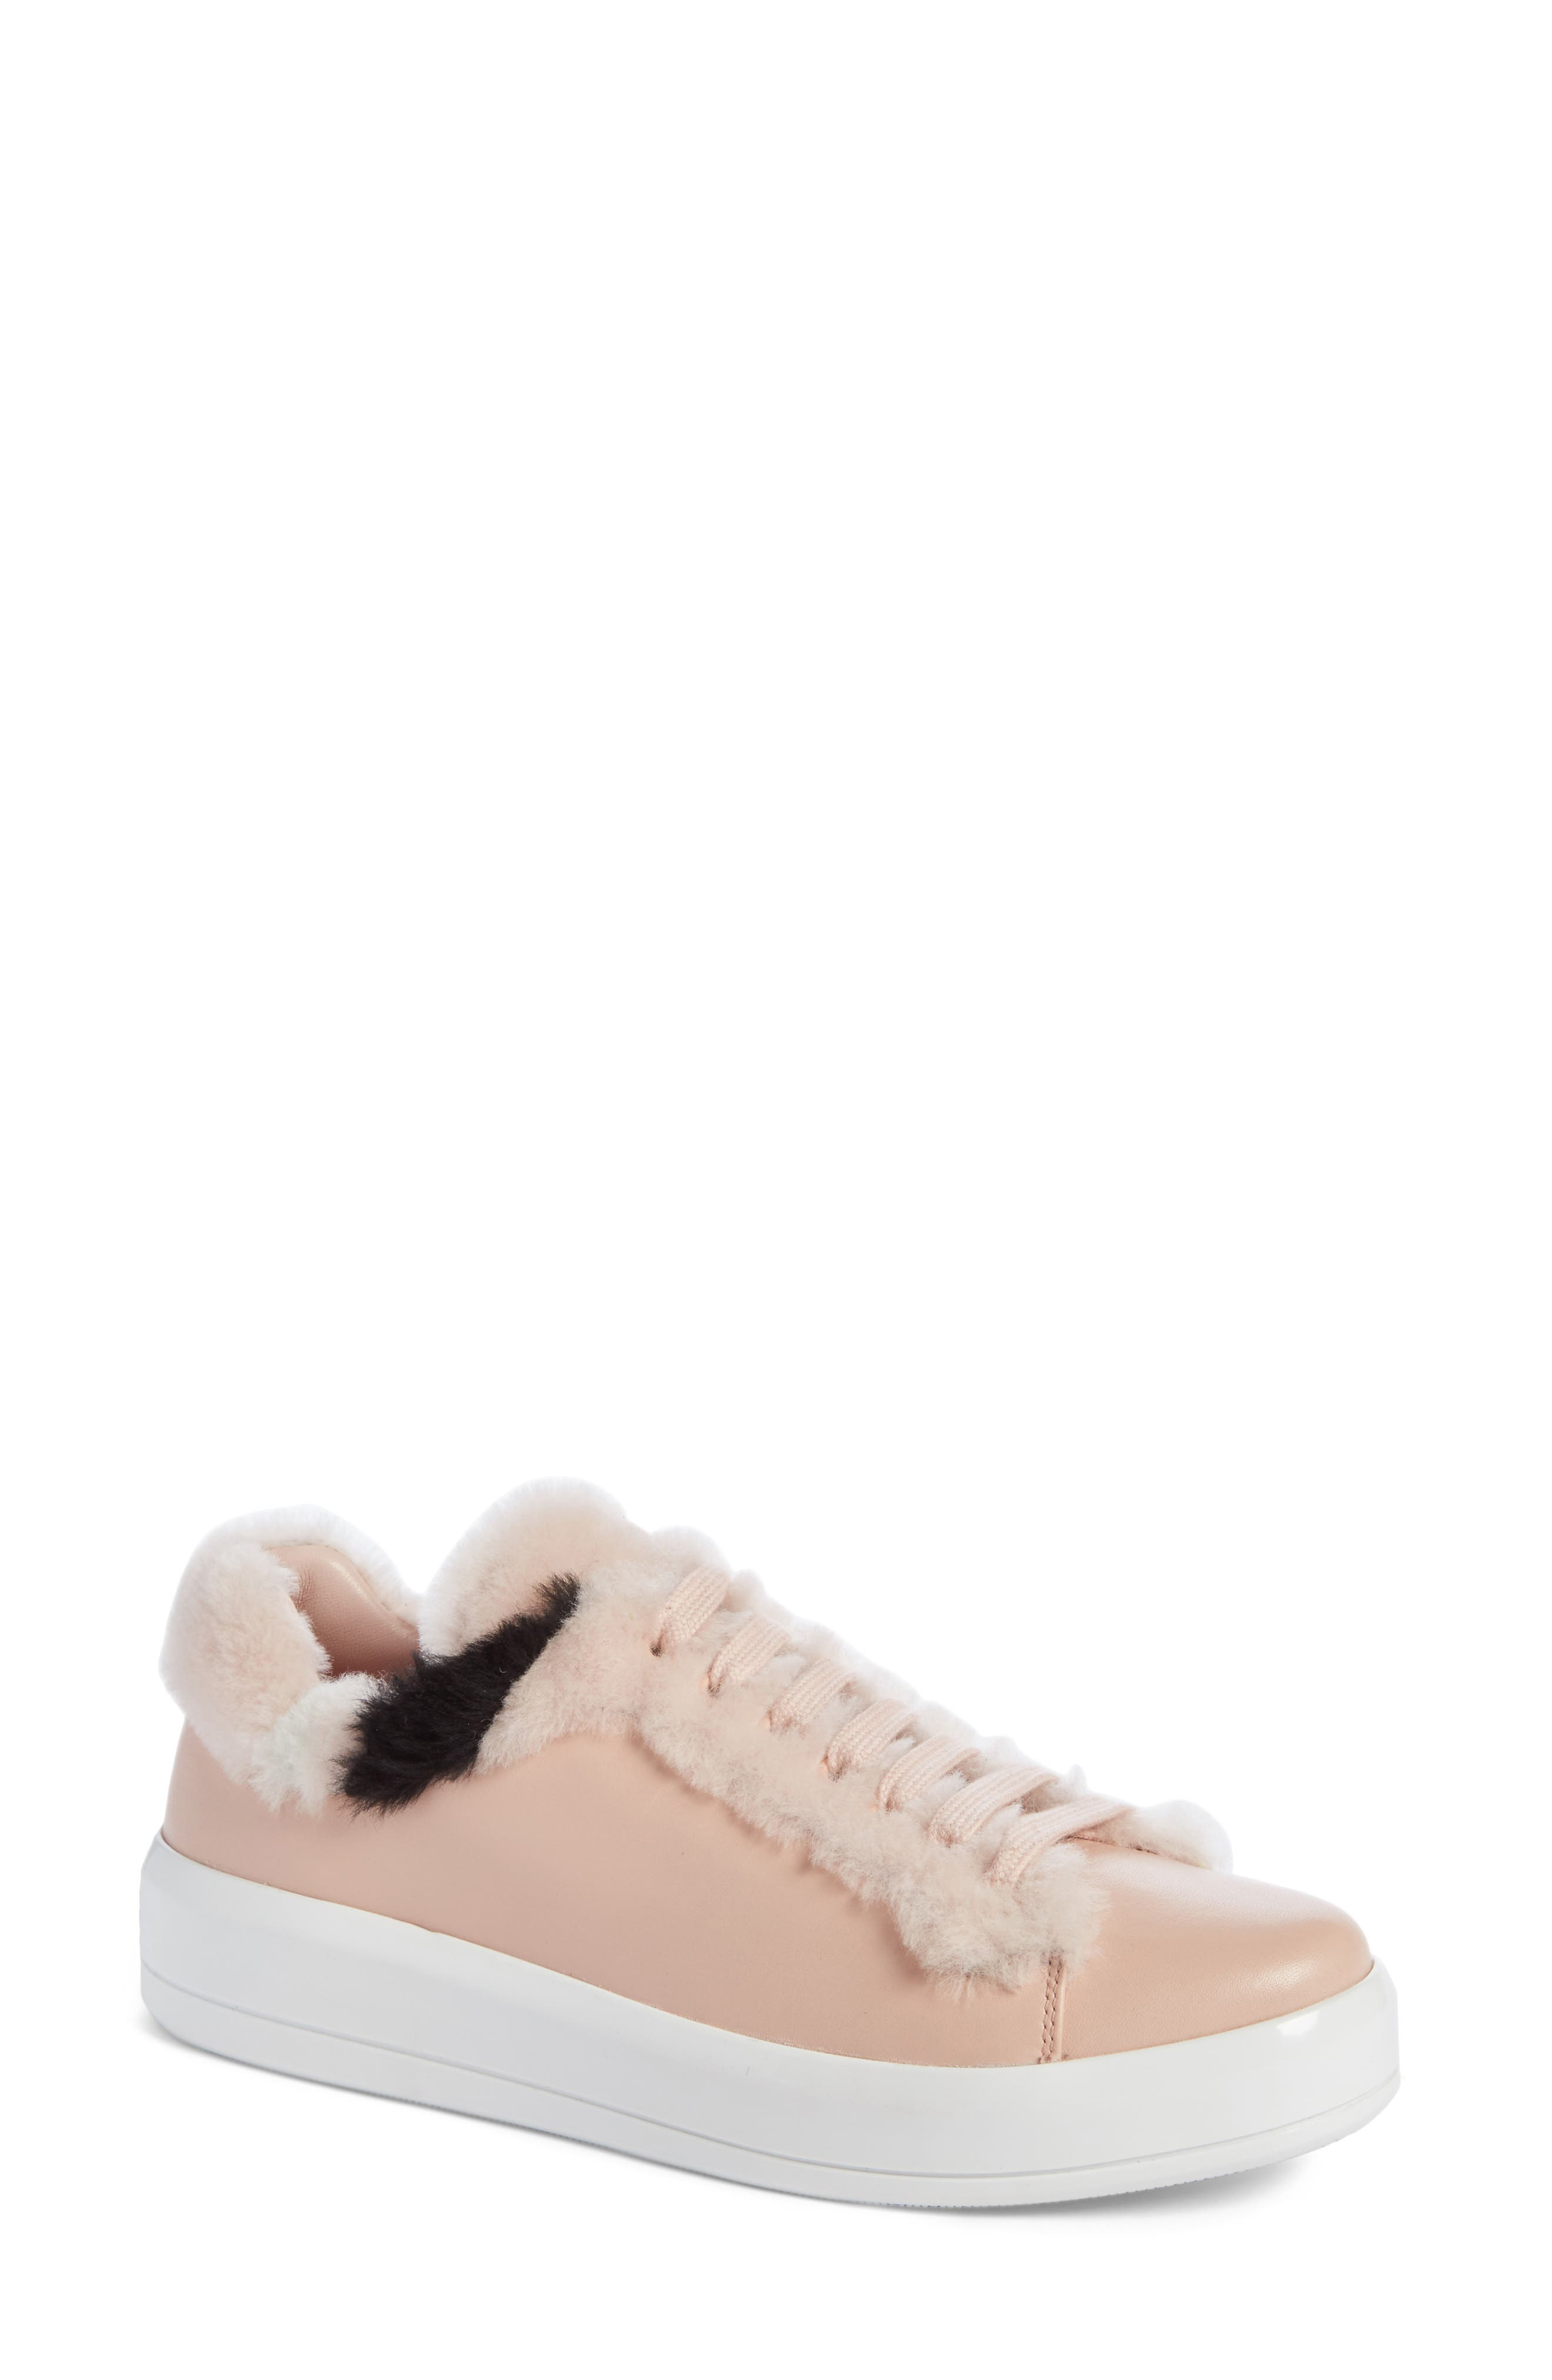 Genuine Shearling Trim Platform Sneaker,                             Main thumbnail 1, color,                             Pink Leather